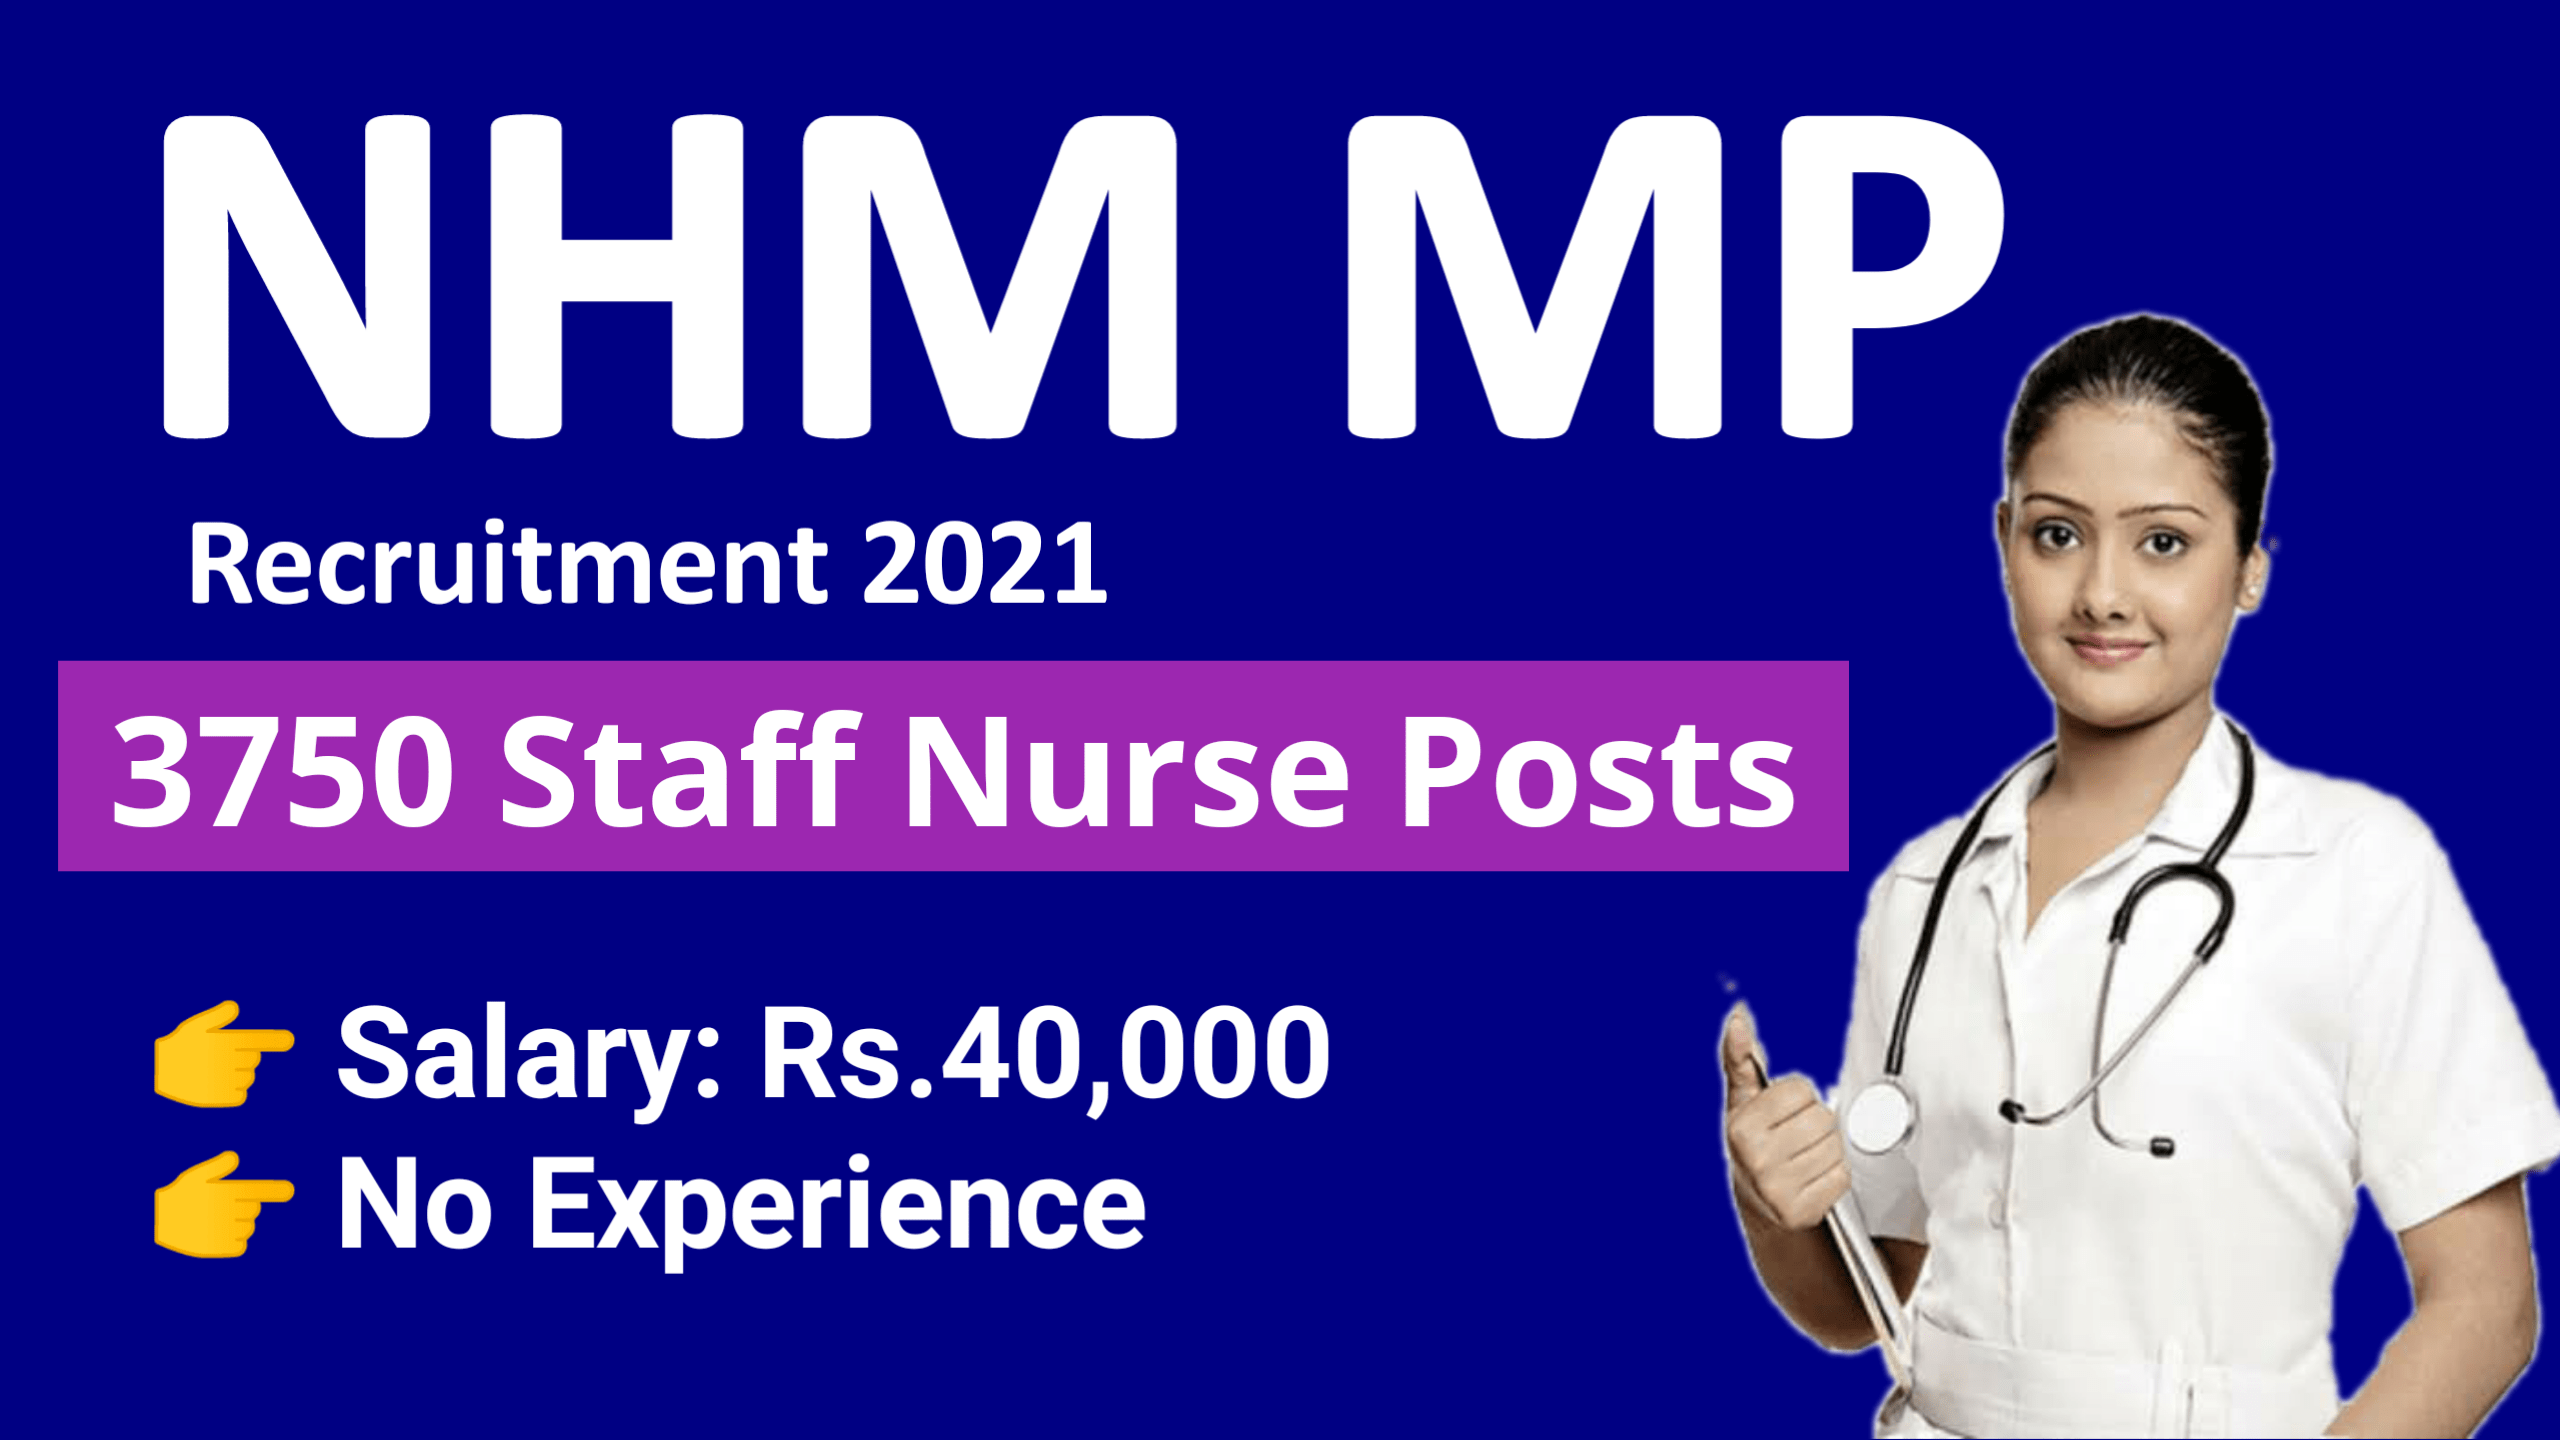 NHM MP Recruitment 2021